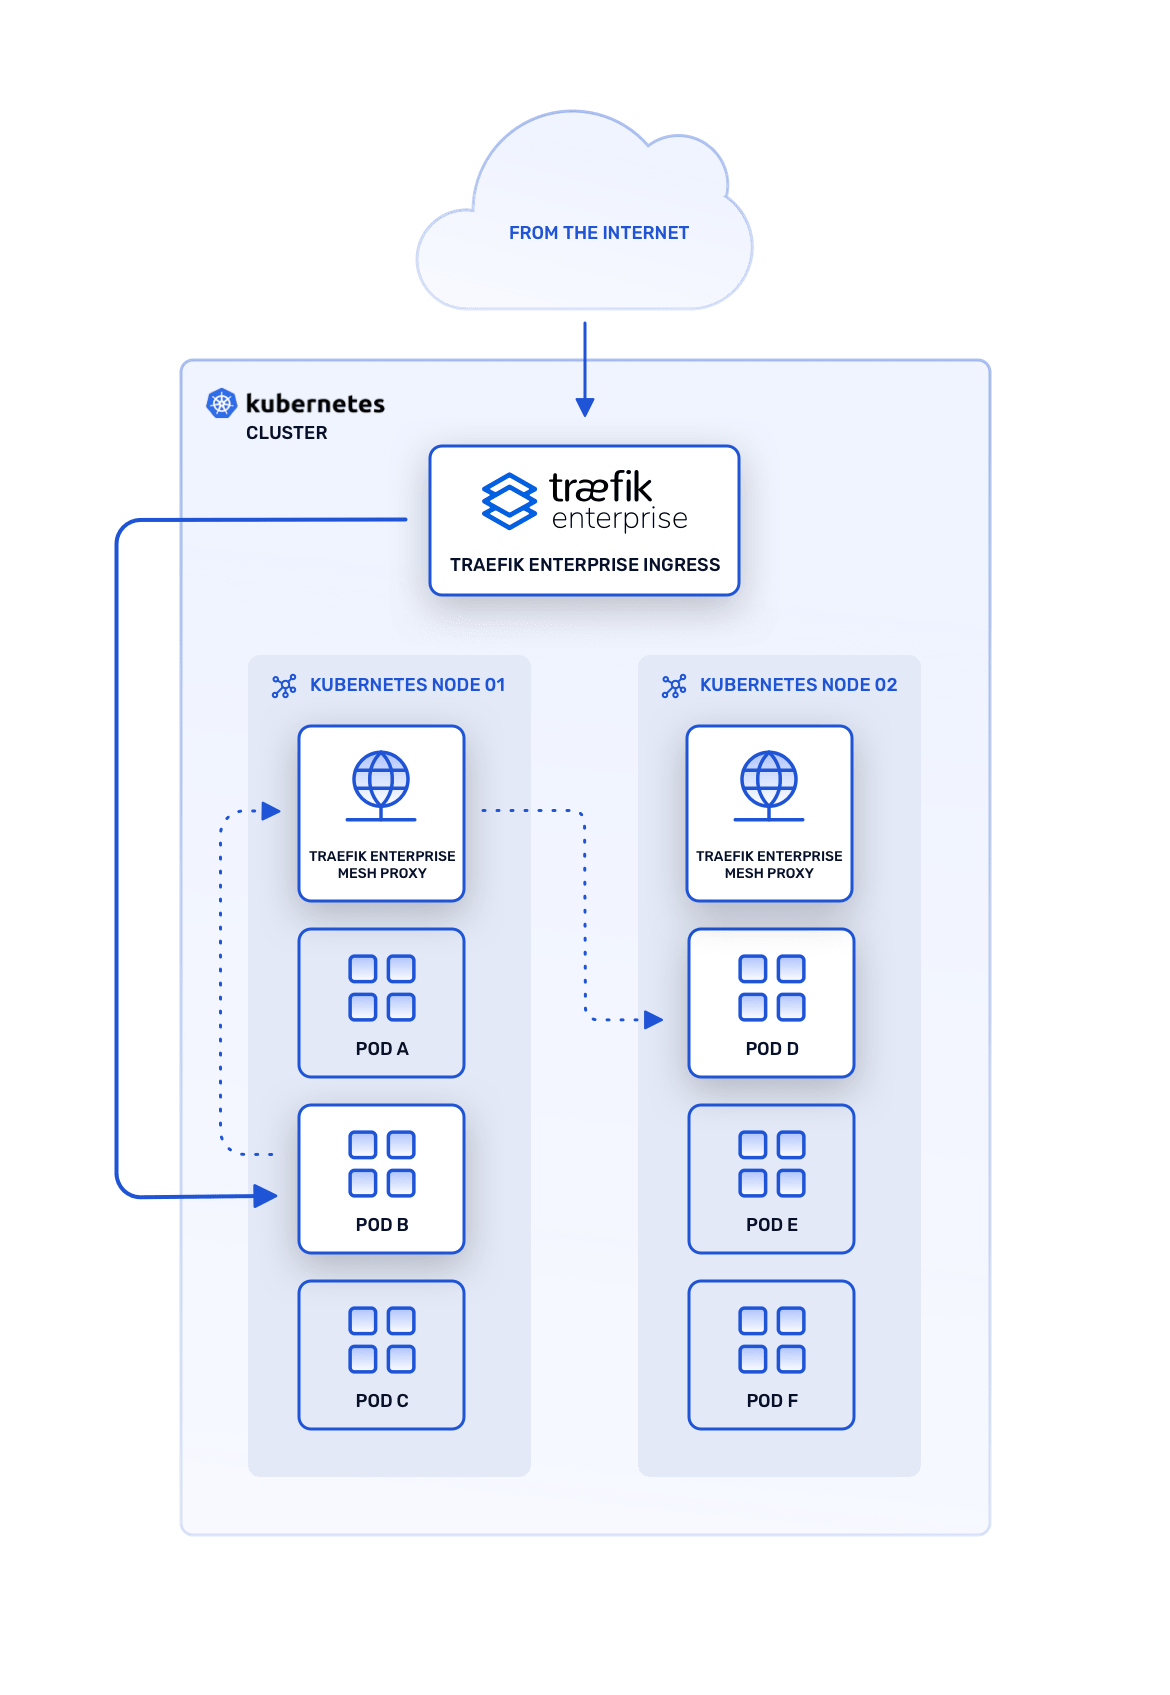 Service Mesh Traefik Enterprise Documentation